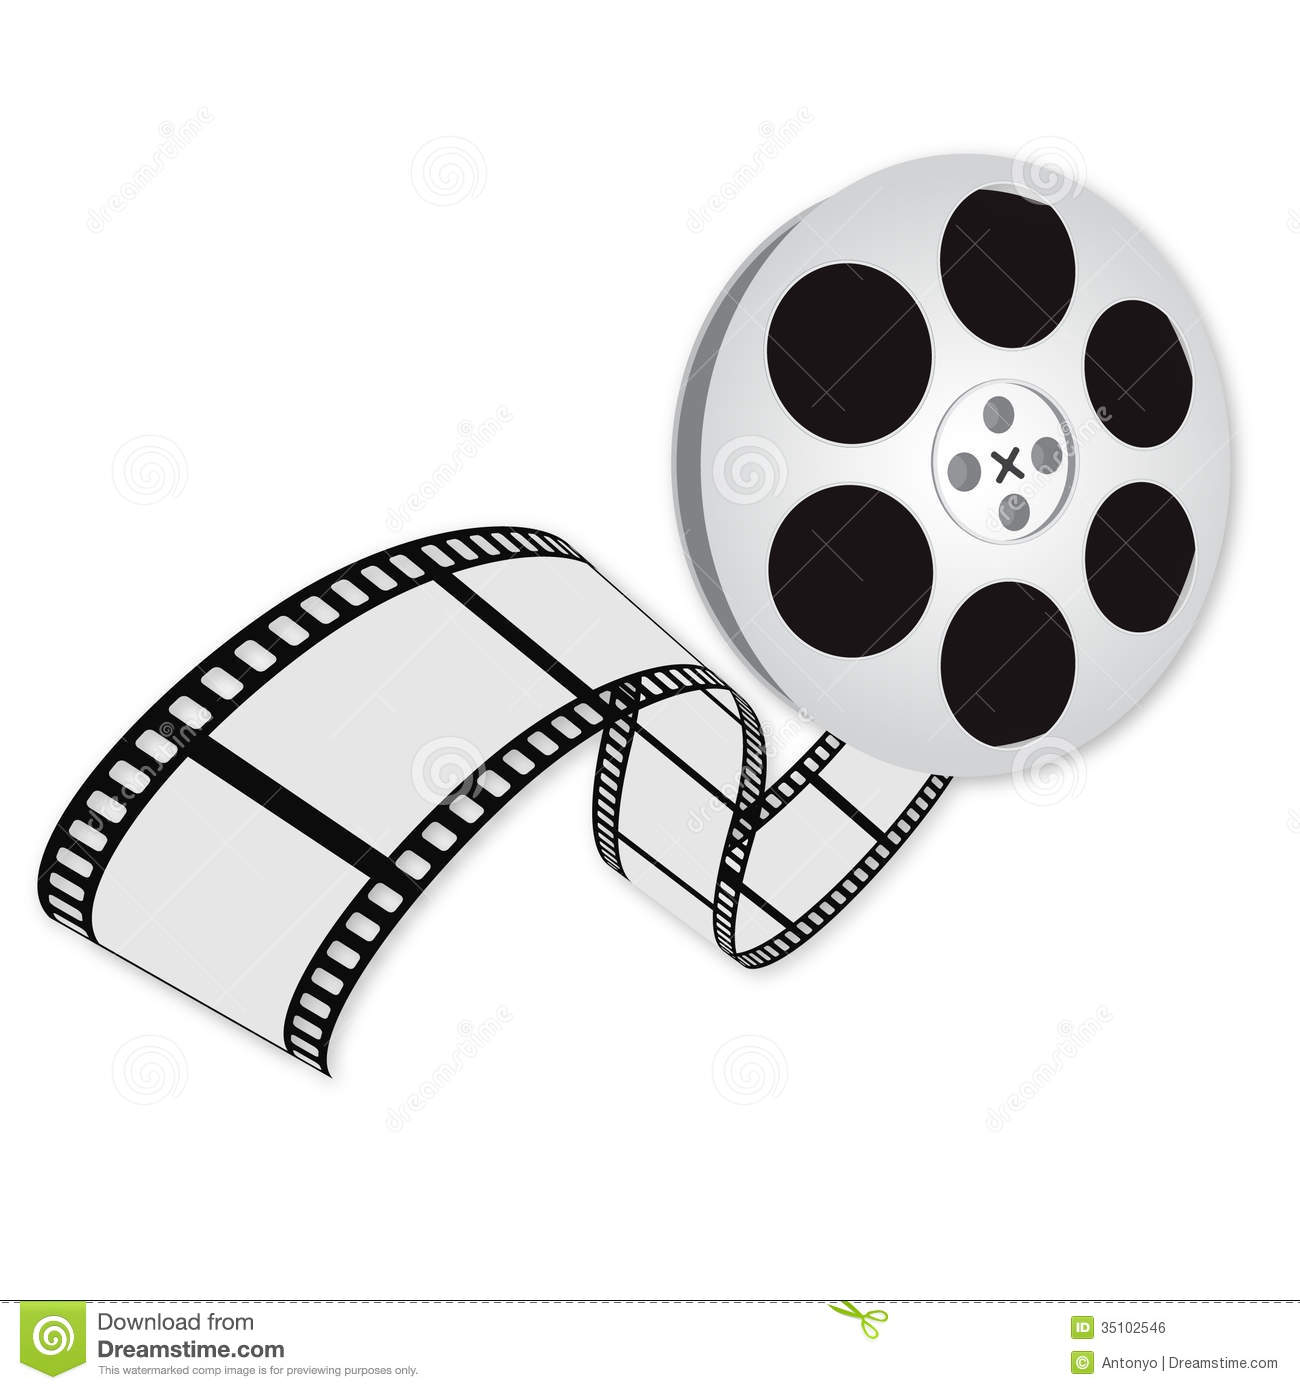 Royalty Free Stock Image Movie Logo Illustration Image35102546 on oscar statue with film